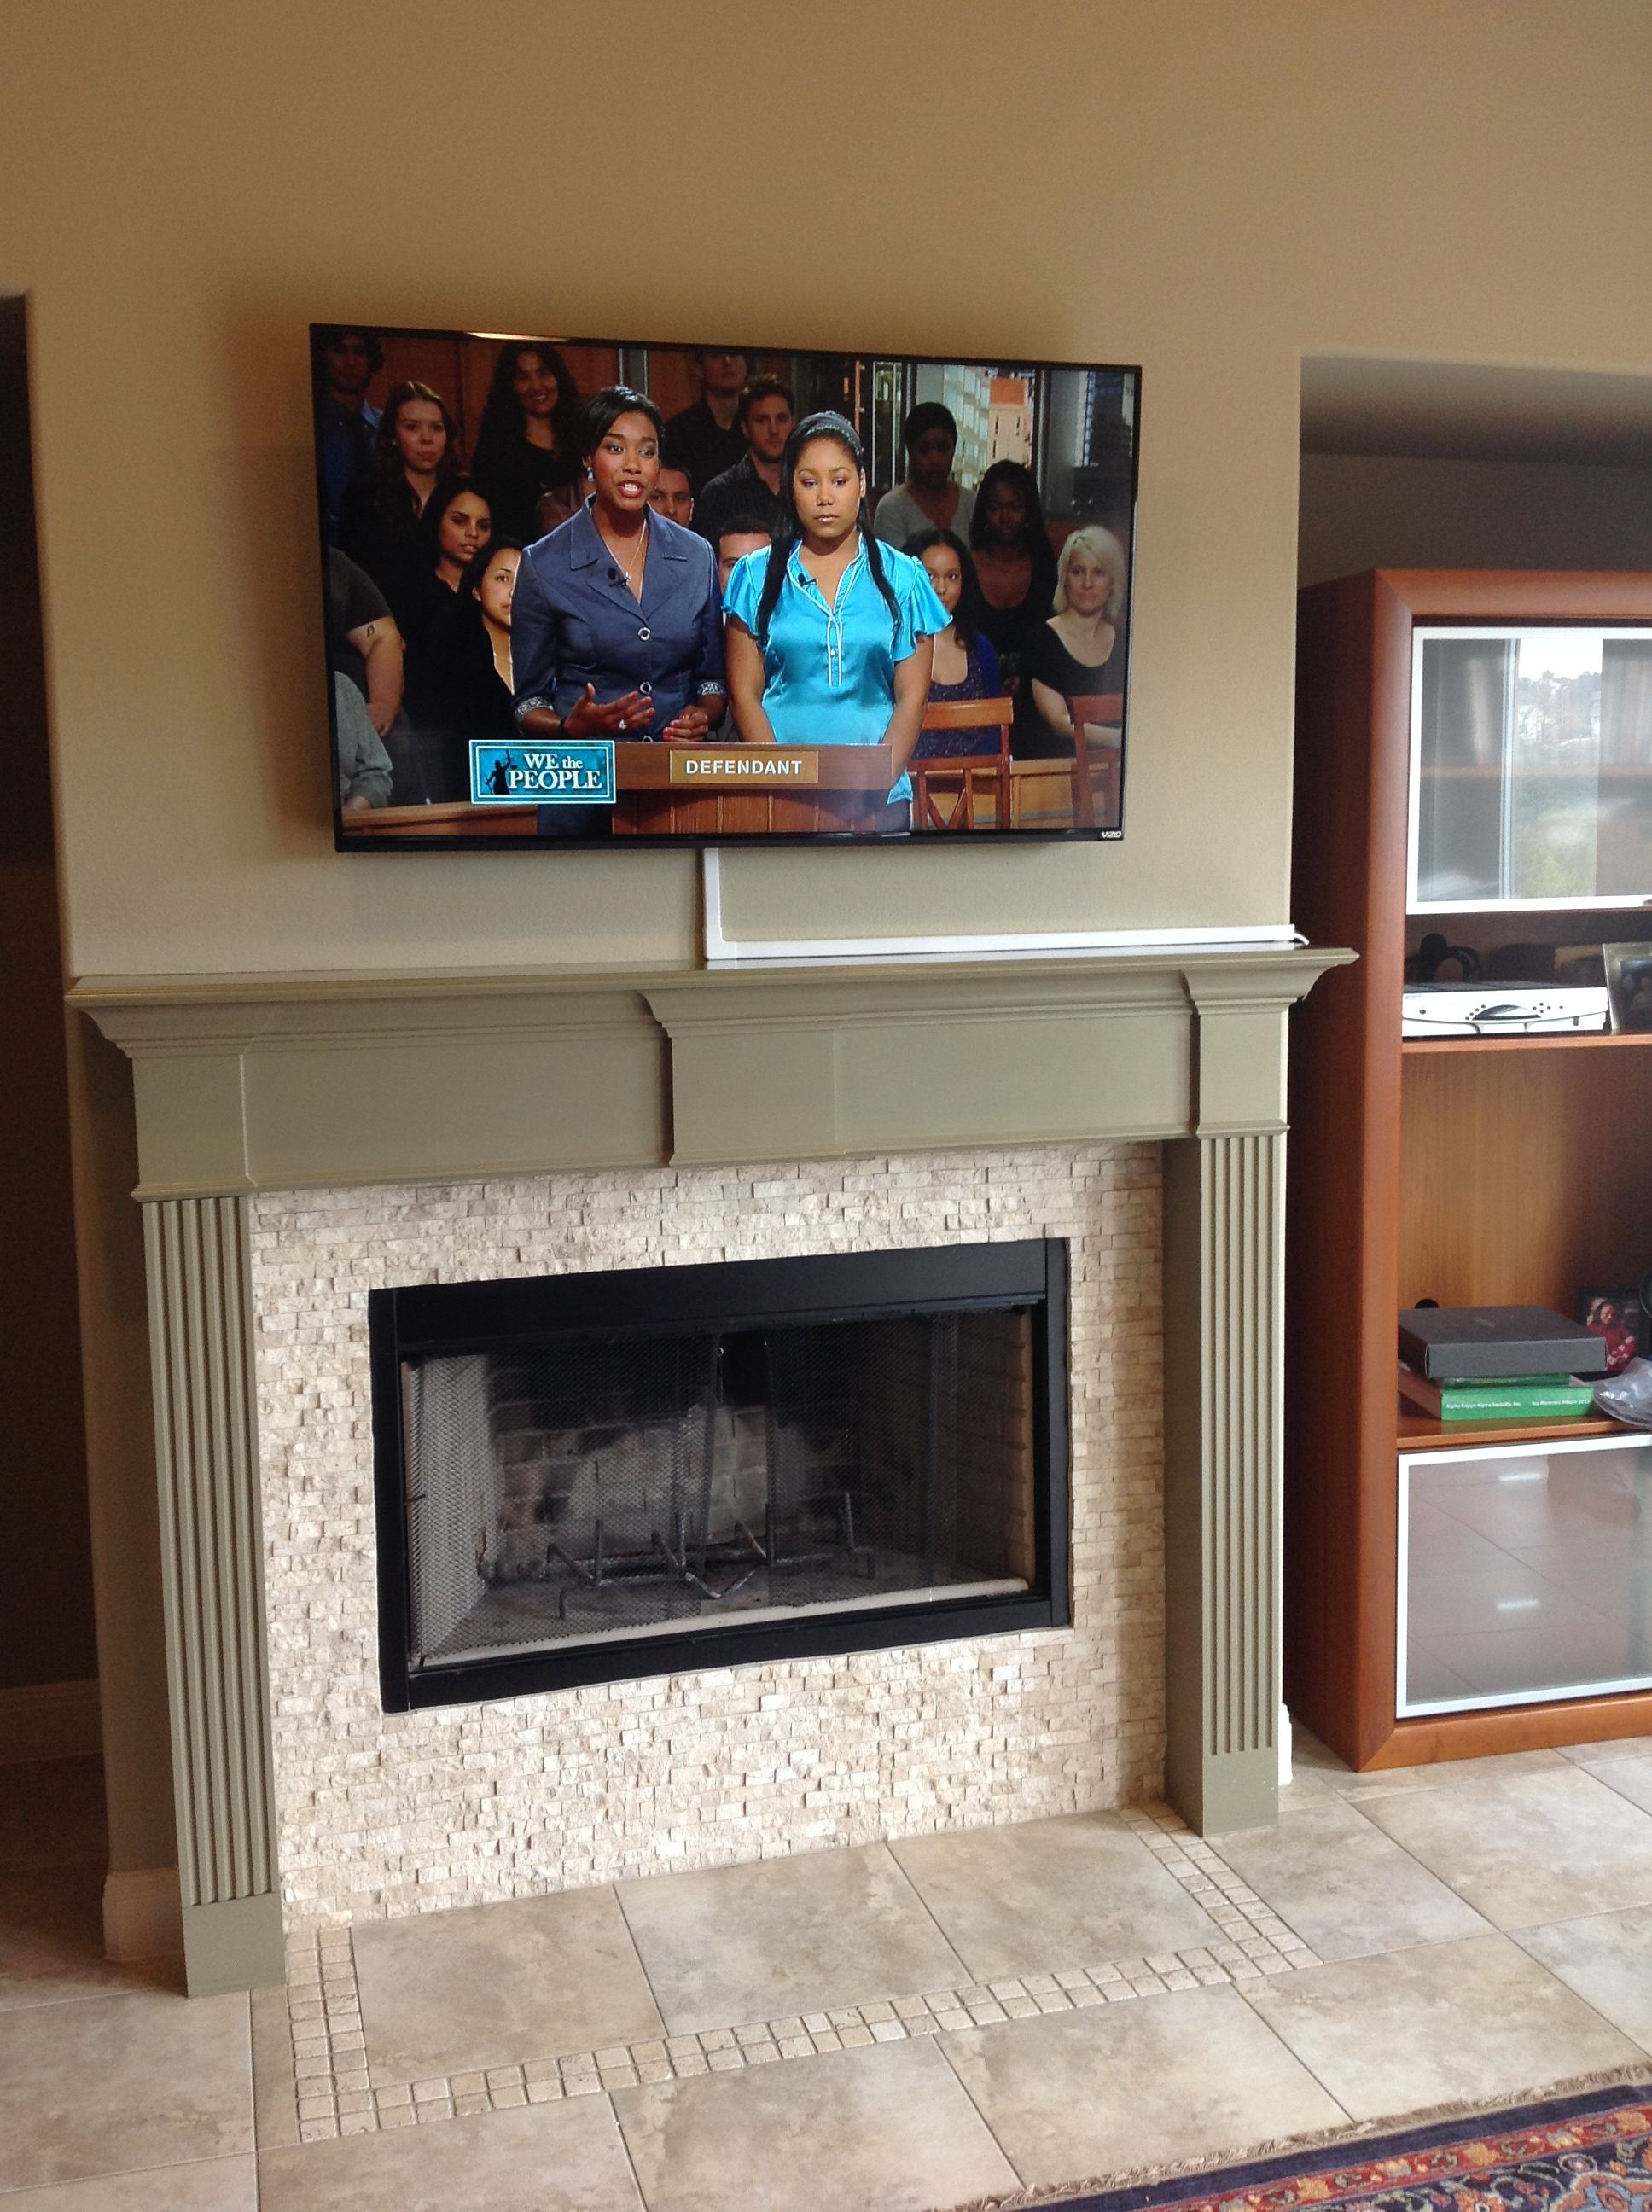 medium resolution of wiring tv above fireplace wiring diagram papertv mounting over a fireplace with wires concealed in wire